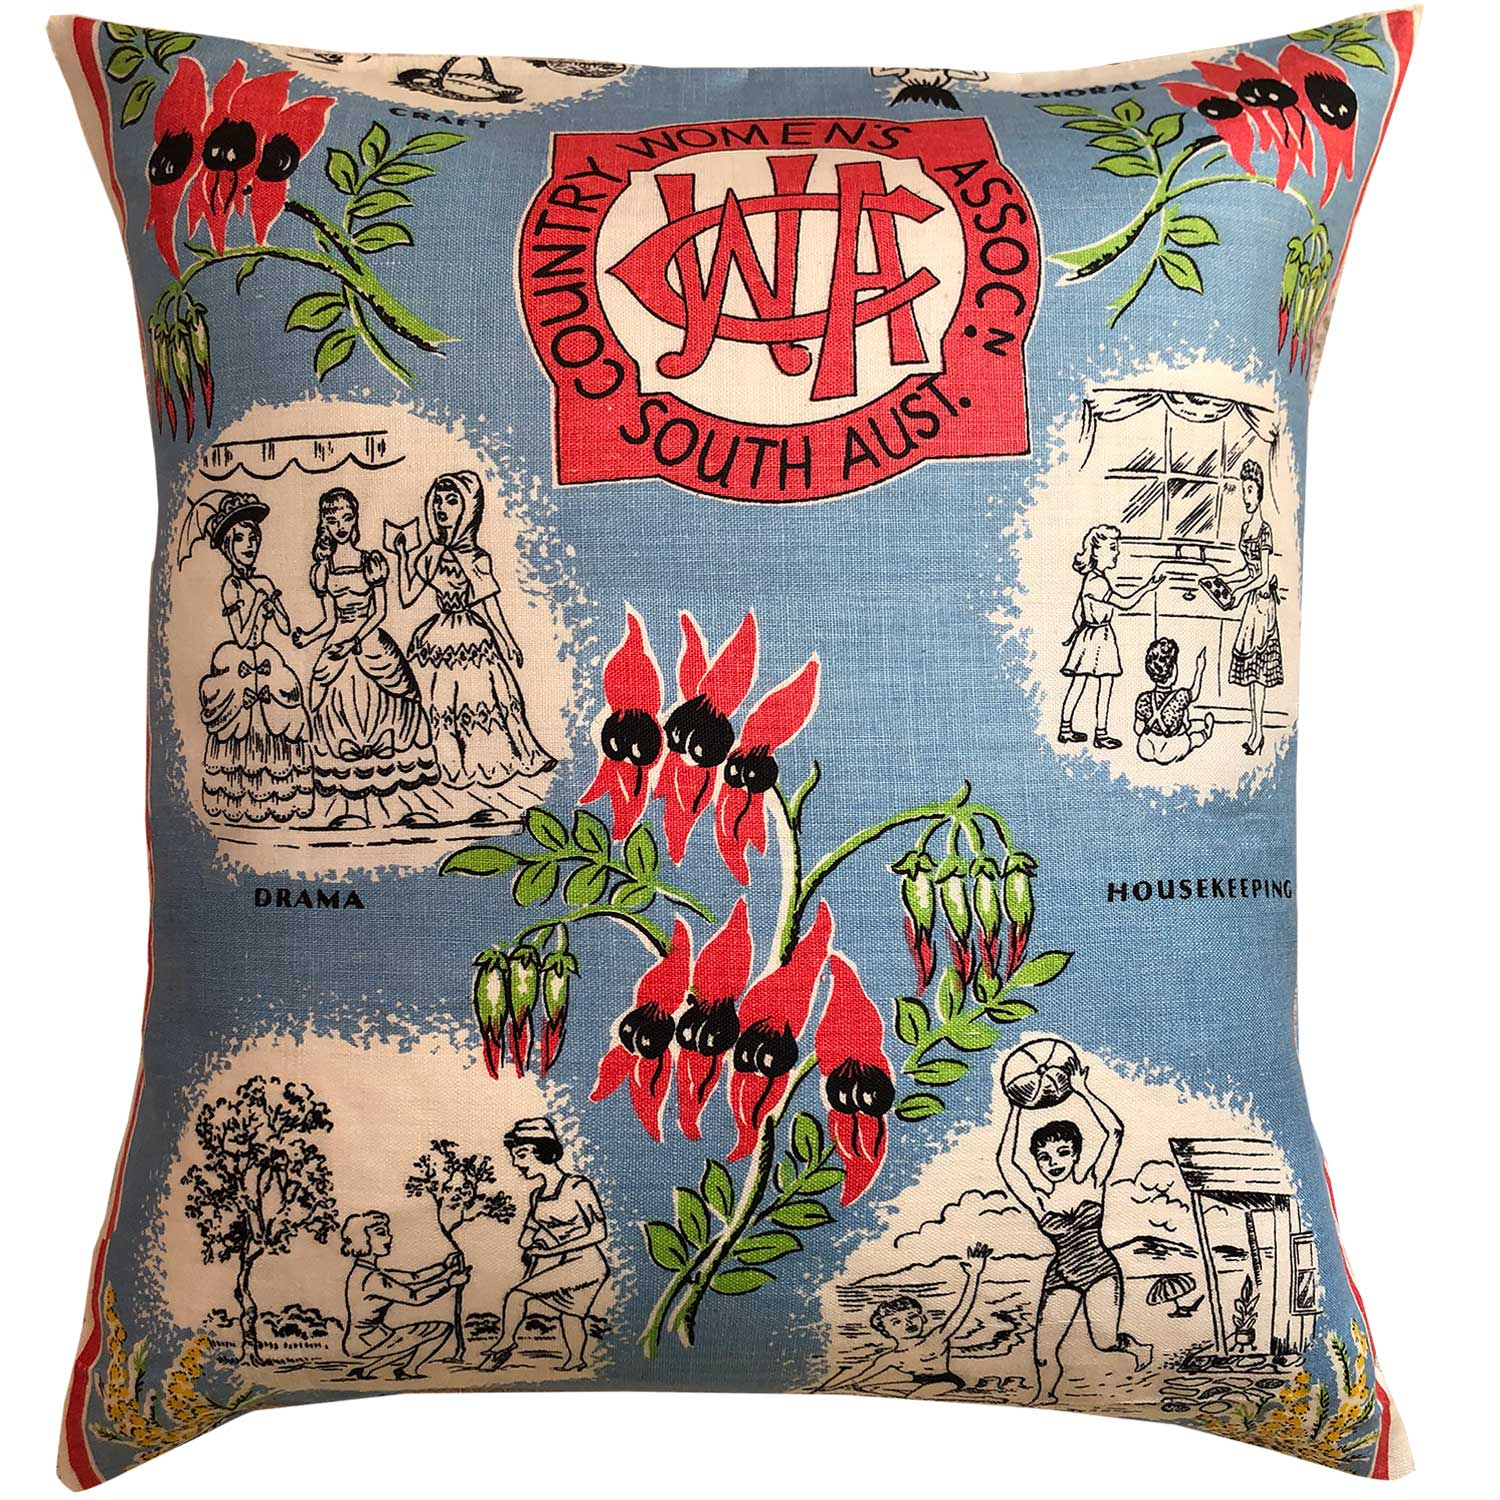 South Australia CWA classic Australiana retro cushion